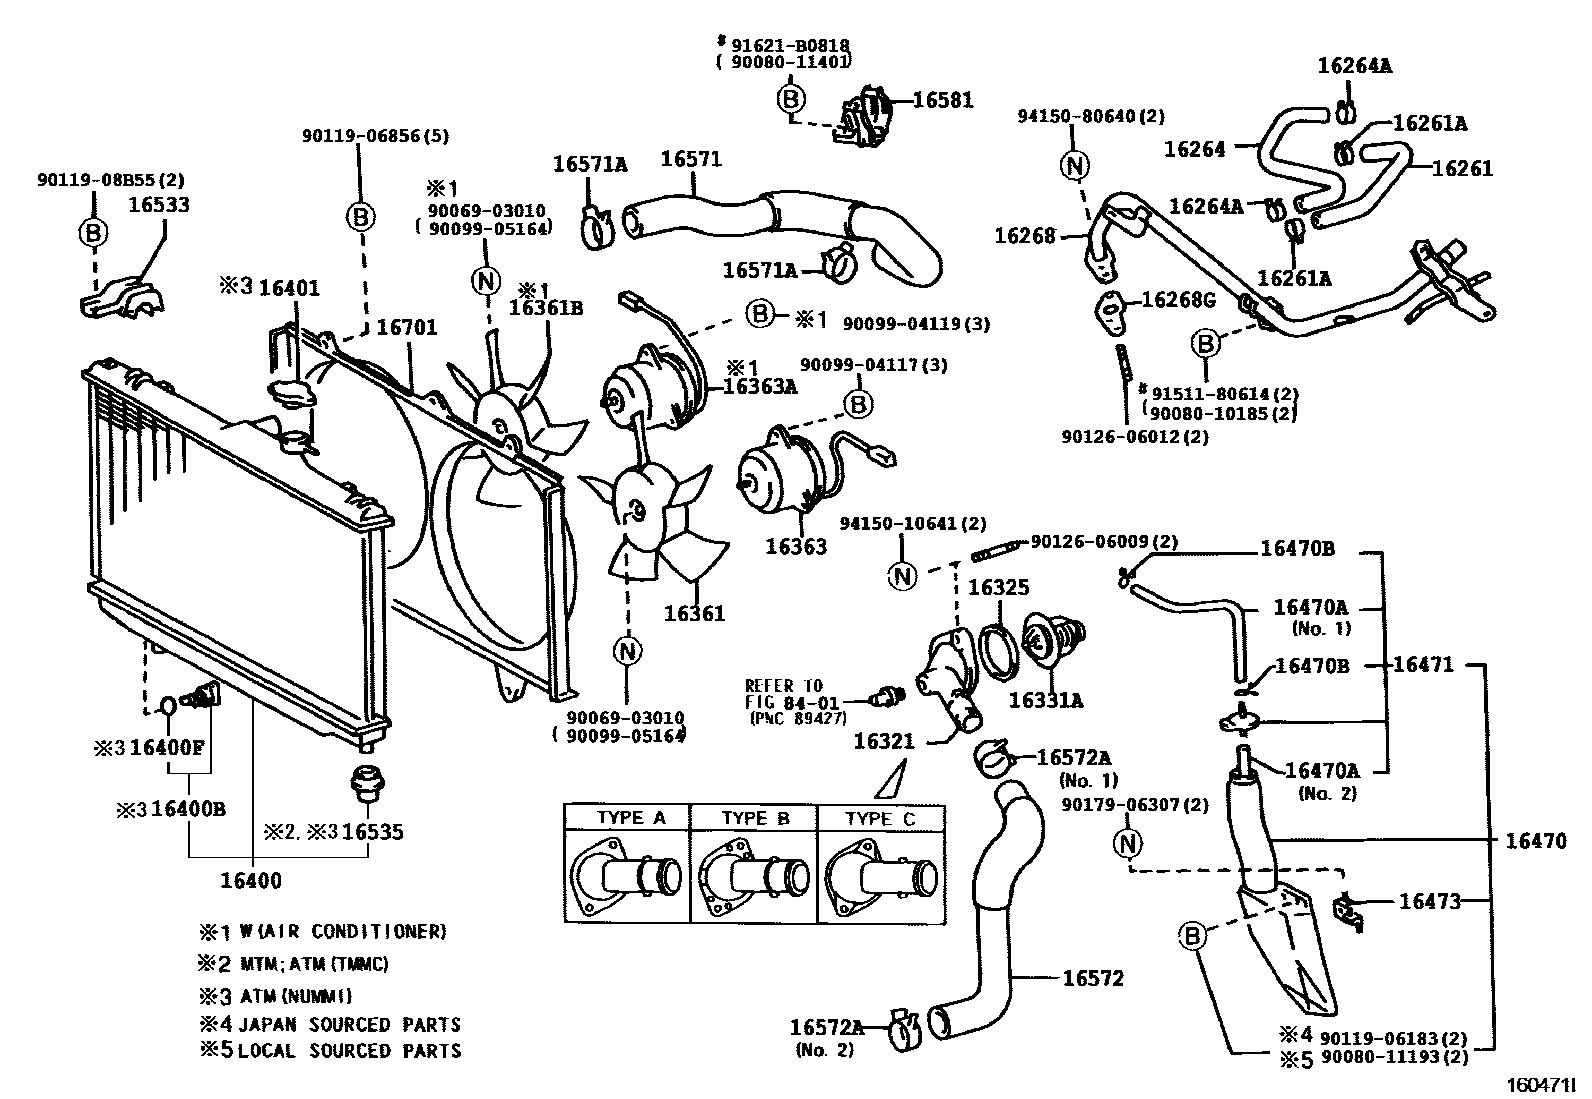 Toyota Corolla Undercarriage Parts likewise 2000 Toyota Tundra Radiator Support Diagram additionally Toyota Corolla 2000 Engine Diagram 36 2000 Toyota Corolla Engine Diagram Famreit besides 2008 Jeep Patriot Engine Diagram Ac Html likewise 2003 Ford Taurus Thermostat Diagram. on 1998 toyota corolla ve 1zzfe zze110